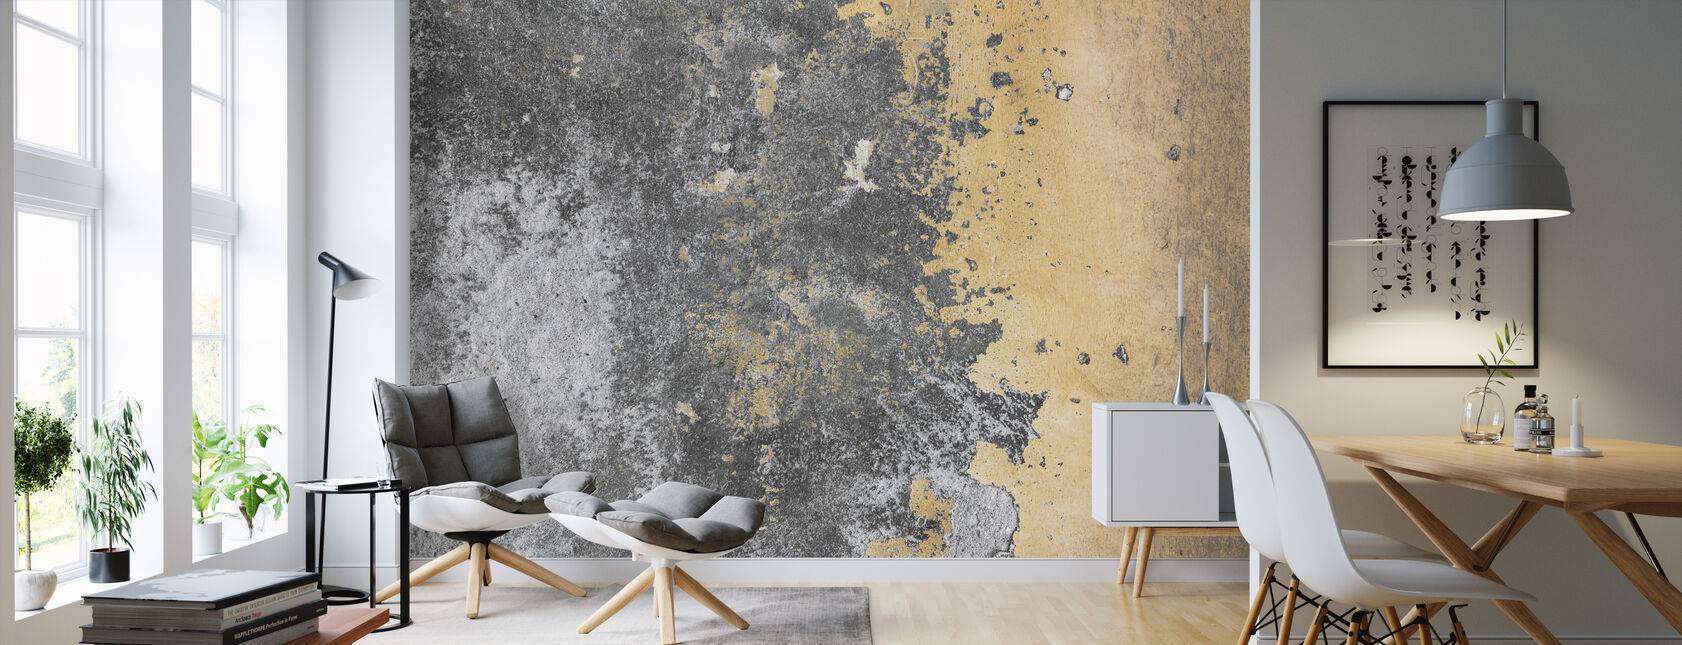 Grunge and Peeling Wall - Wallpaper - Living Room